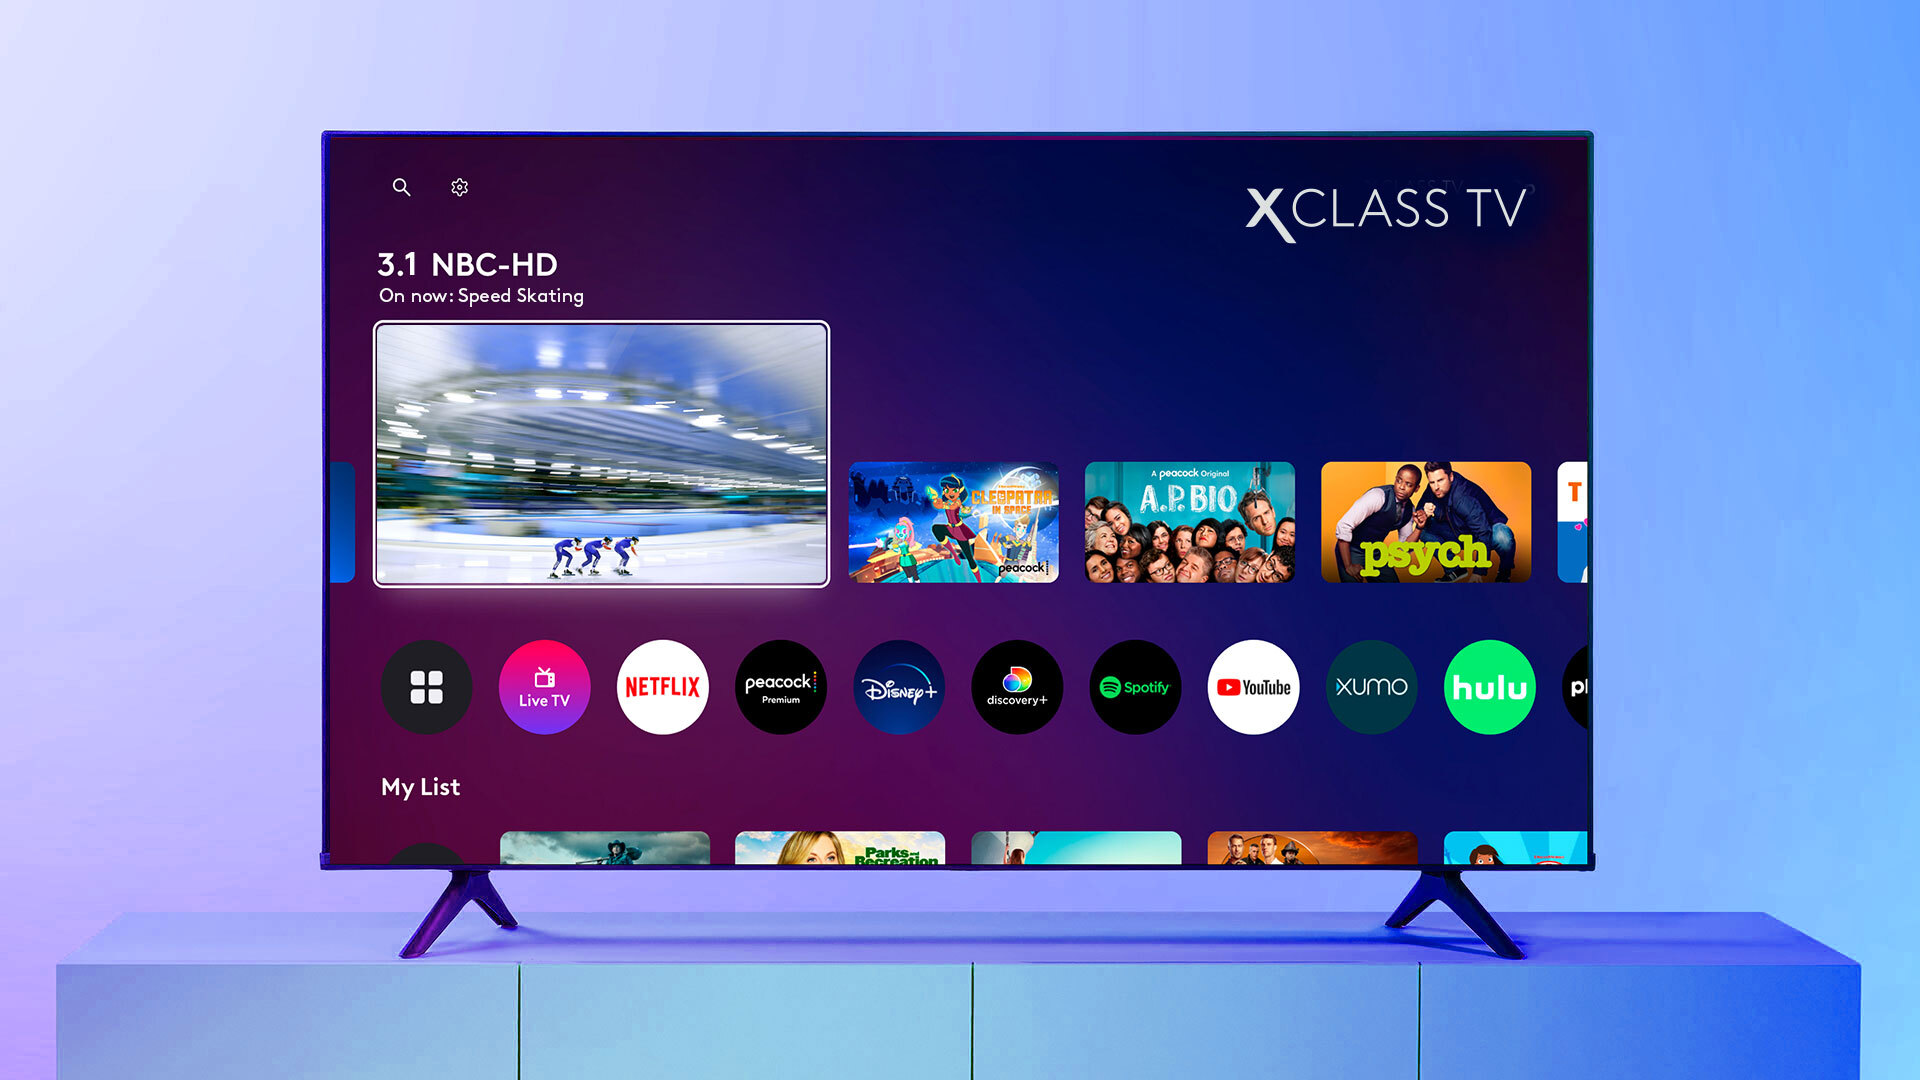 Comcast Enters Smart-TV Game With XClass TV, A Peacock-Powered, Streaming-Focused Set